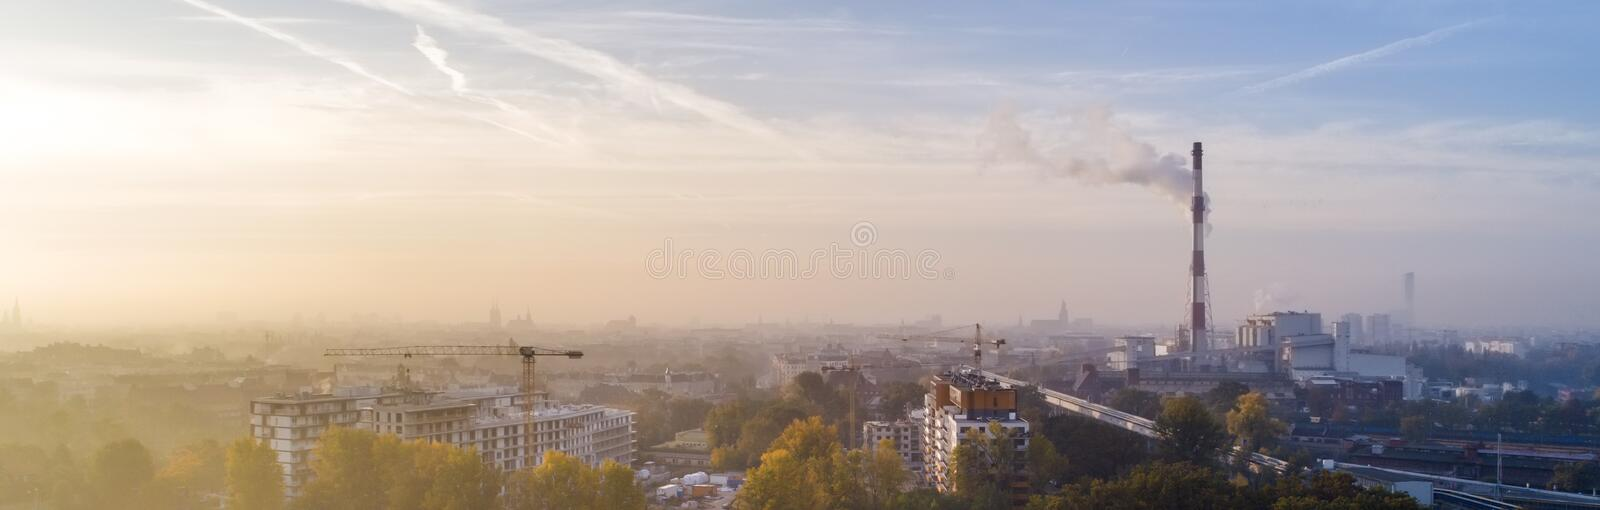 Smog over the city of Wrocław, Poland. Winter view of the city skyline stock image